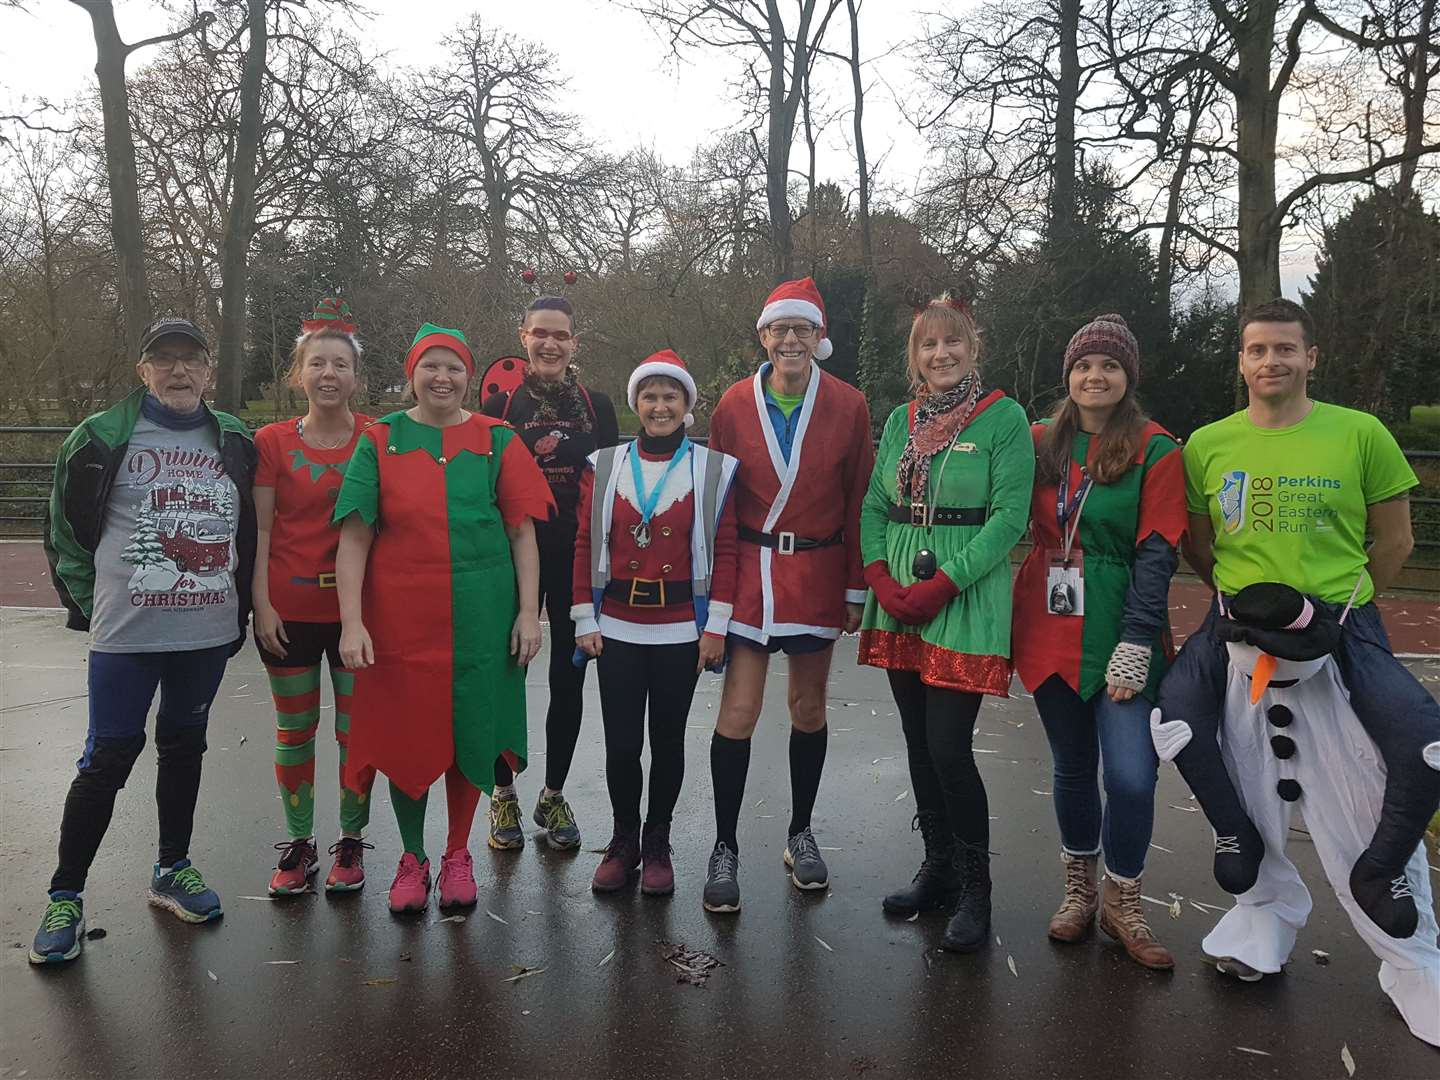 Christmas fancy dress parkrun in King's Lynn 2018. Picture: SUBMITTED. (6201679)